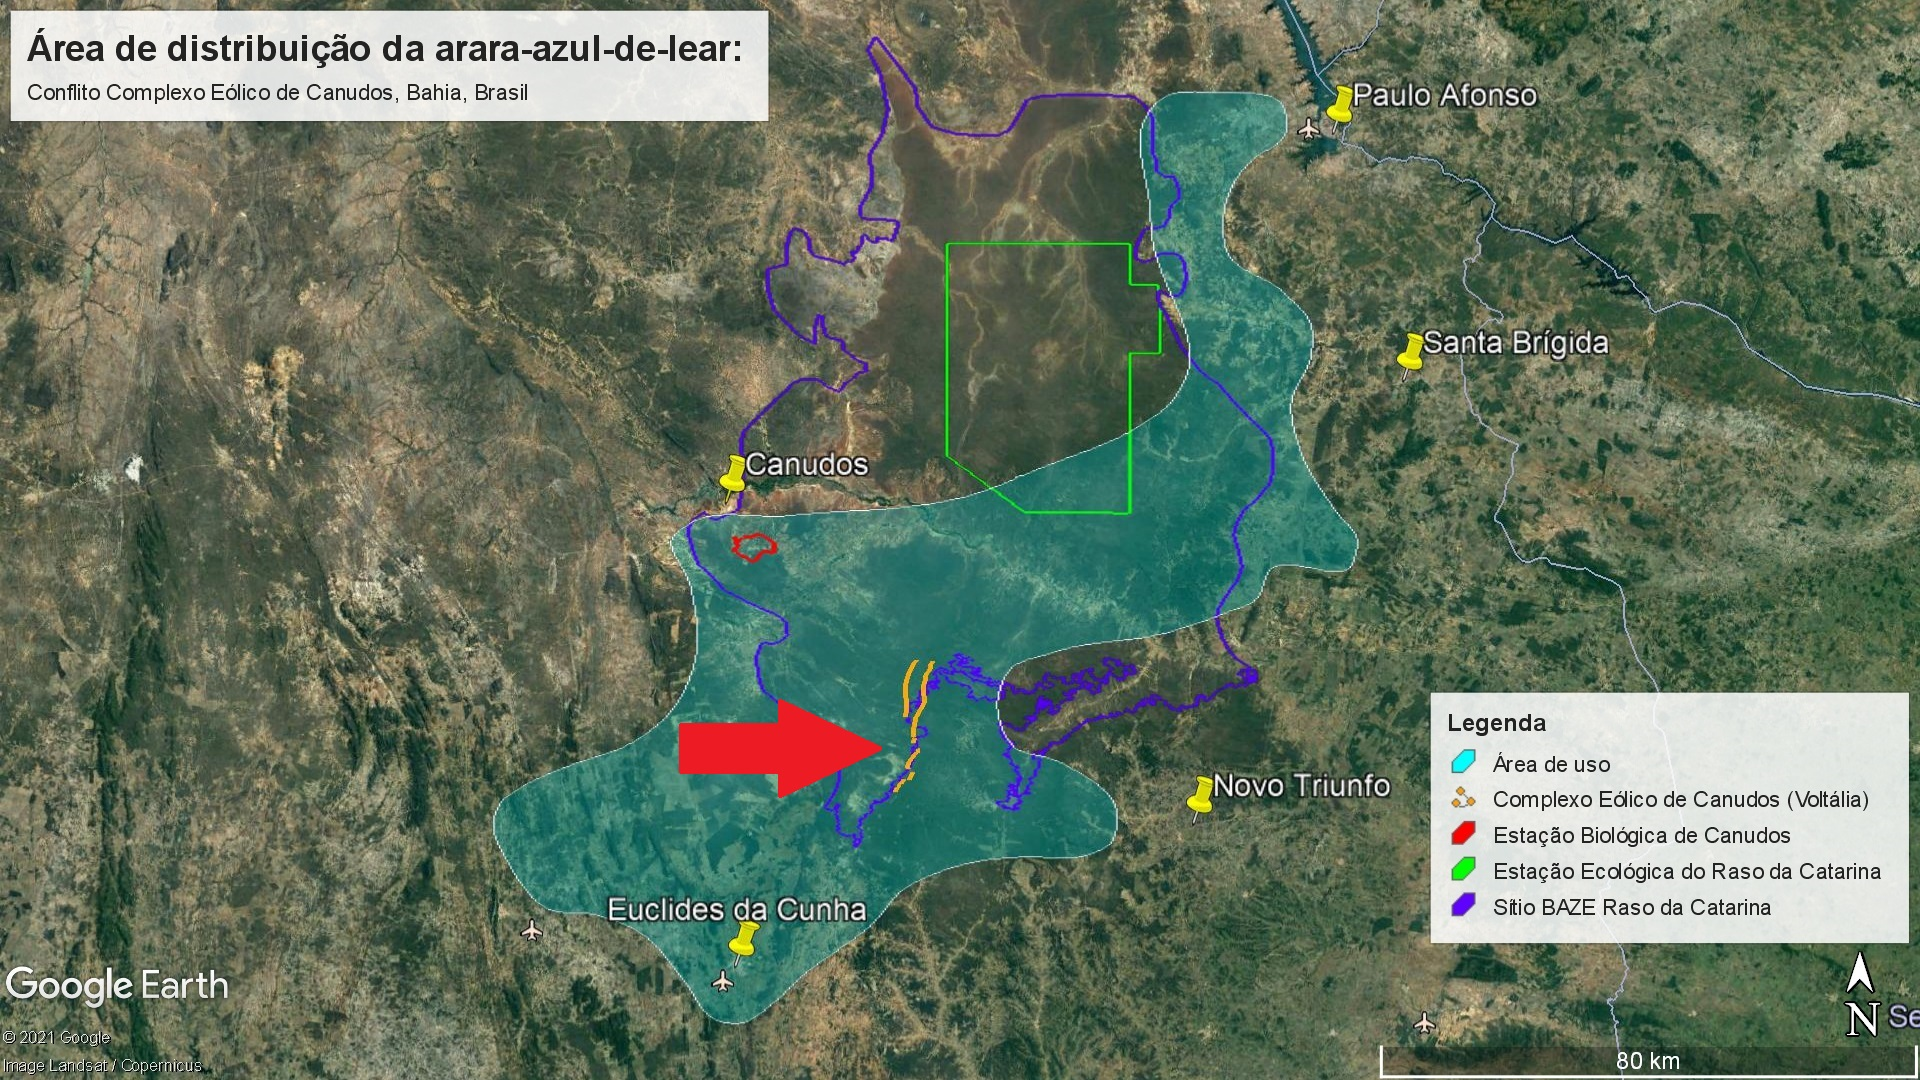 The red arrow indicates the location of the Canudos wind farm is indicated by a red arrow near the yellow lines. The light blue patch is the Lear's macaw home range in the Raso da Catarina region. Image courtesy of the Biodiversitas Foundation.